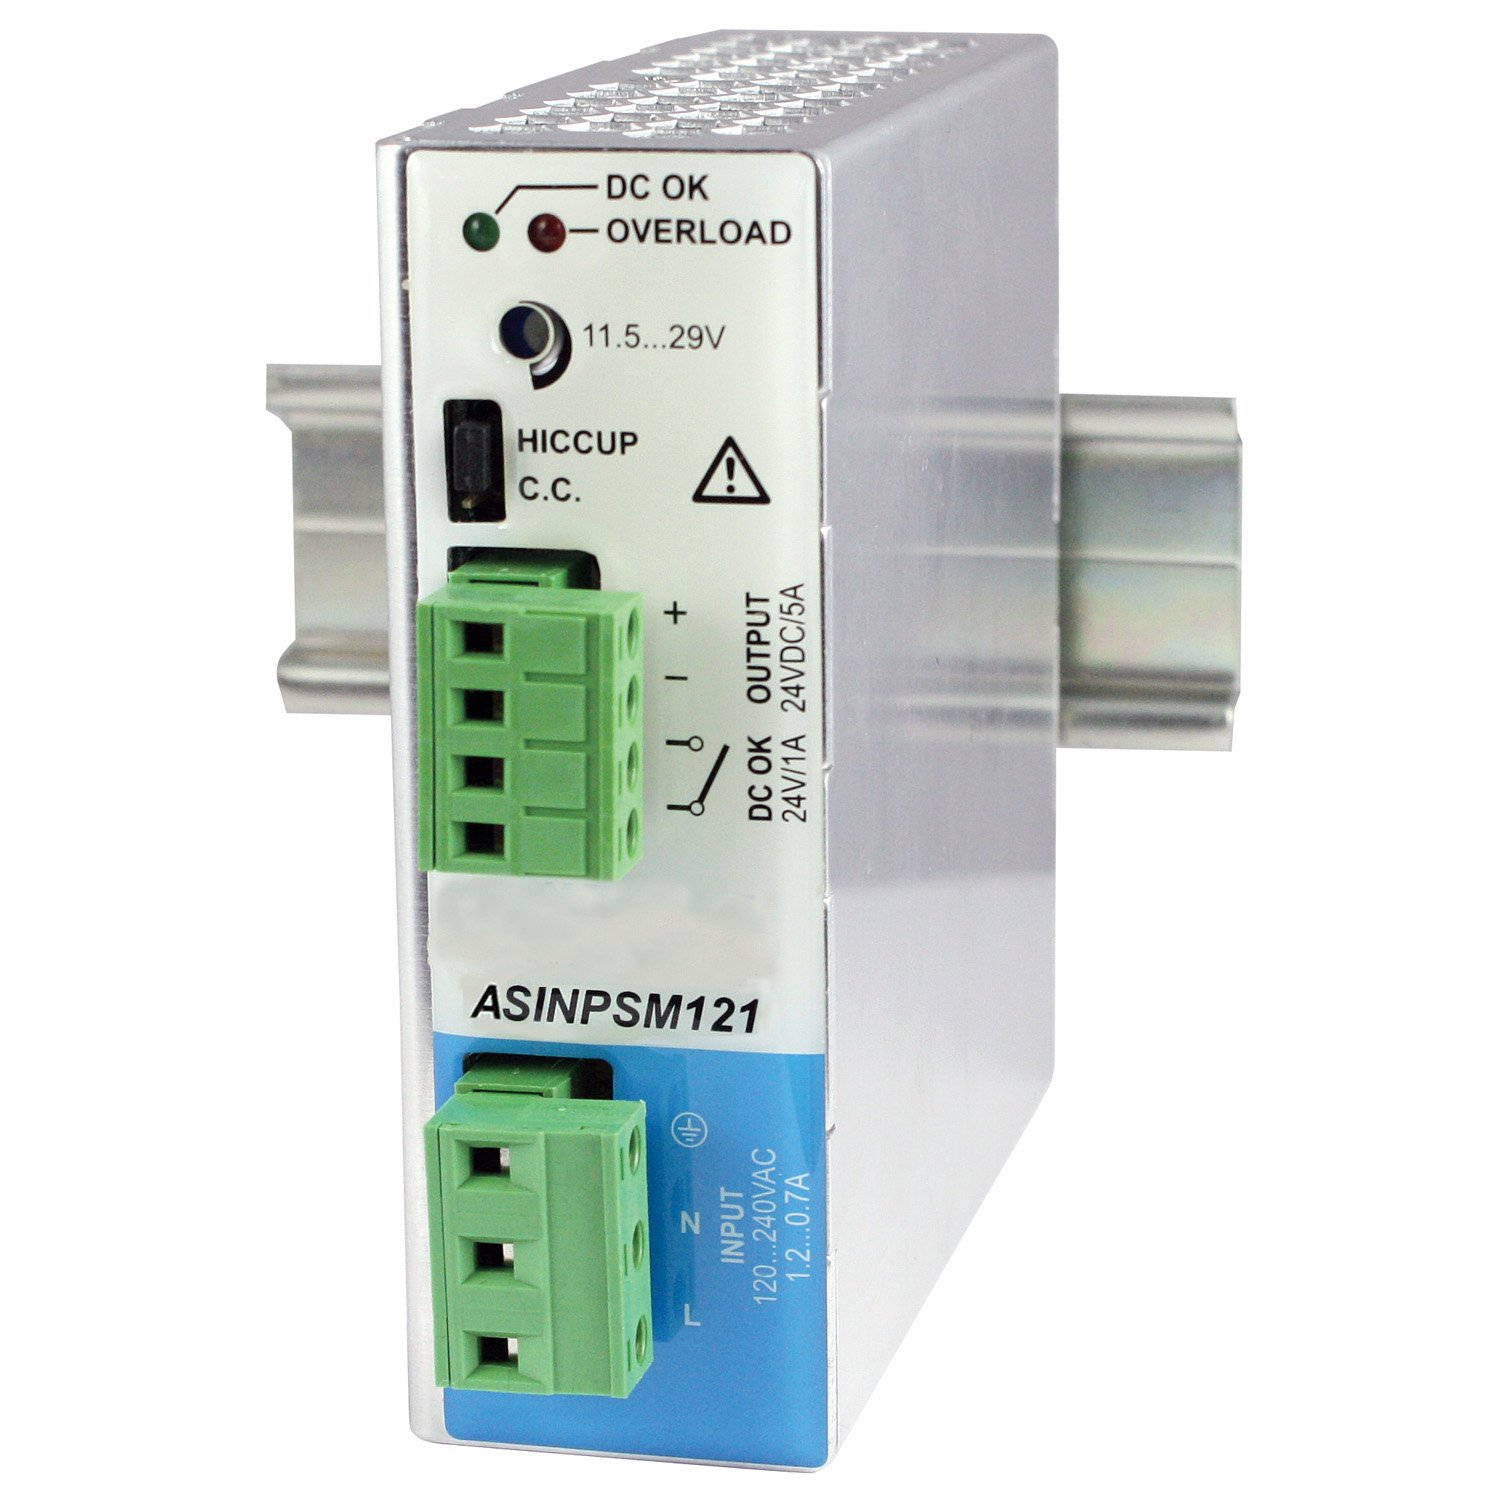 ASI ASINPSM121-24 24V Super Compact DIN Rail Power Supply, 5 Amp, 120W Output, 90 VAC to 264 VAC Input